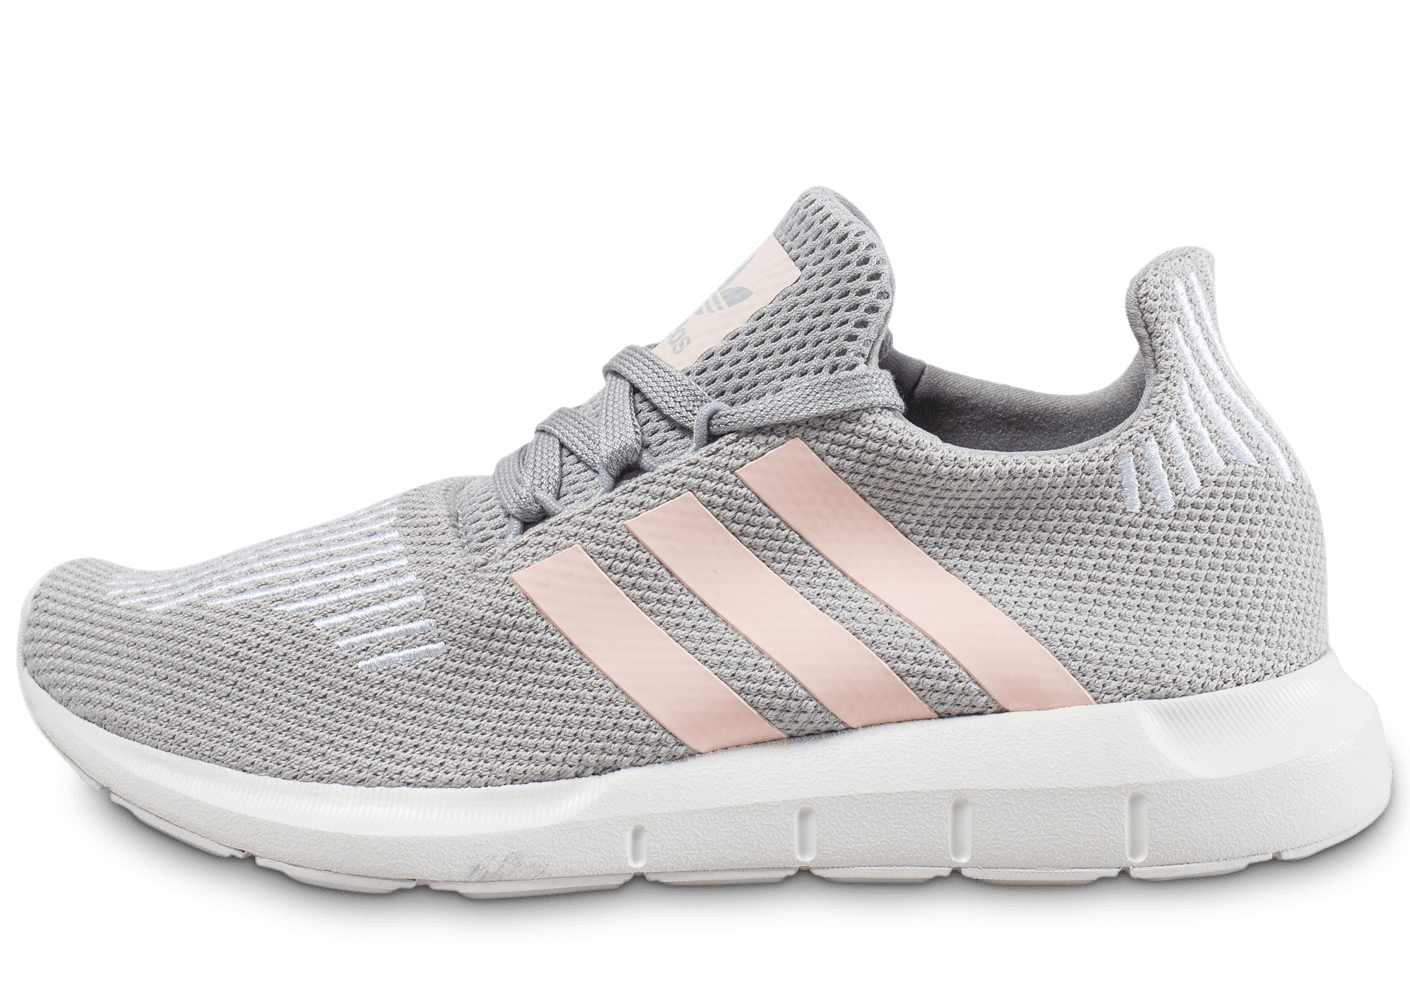 size 40 4e583 a14d3 adidas Swift Run grise et rose - Chaussures adidas - Chausport